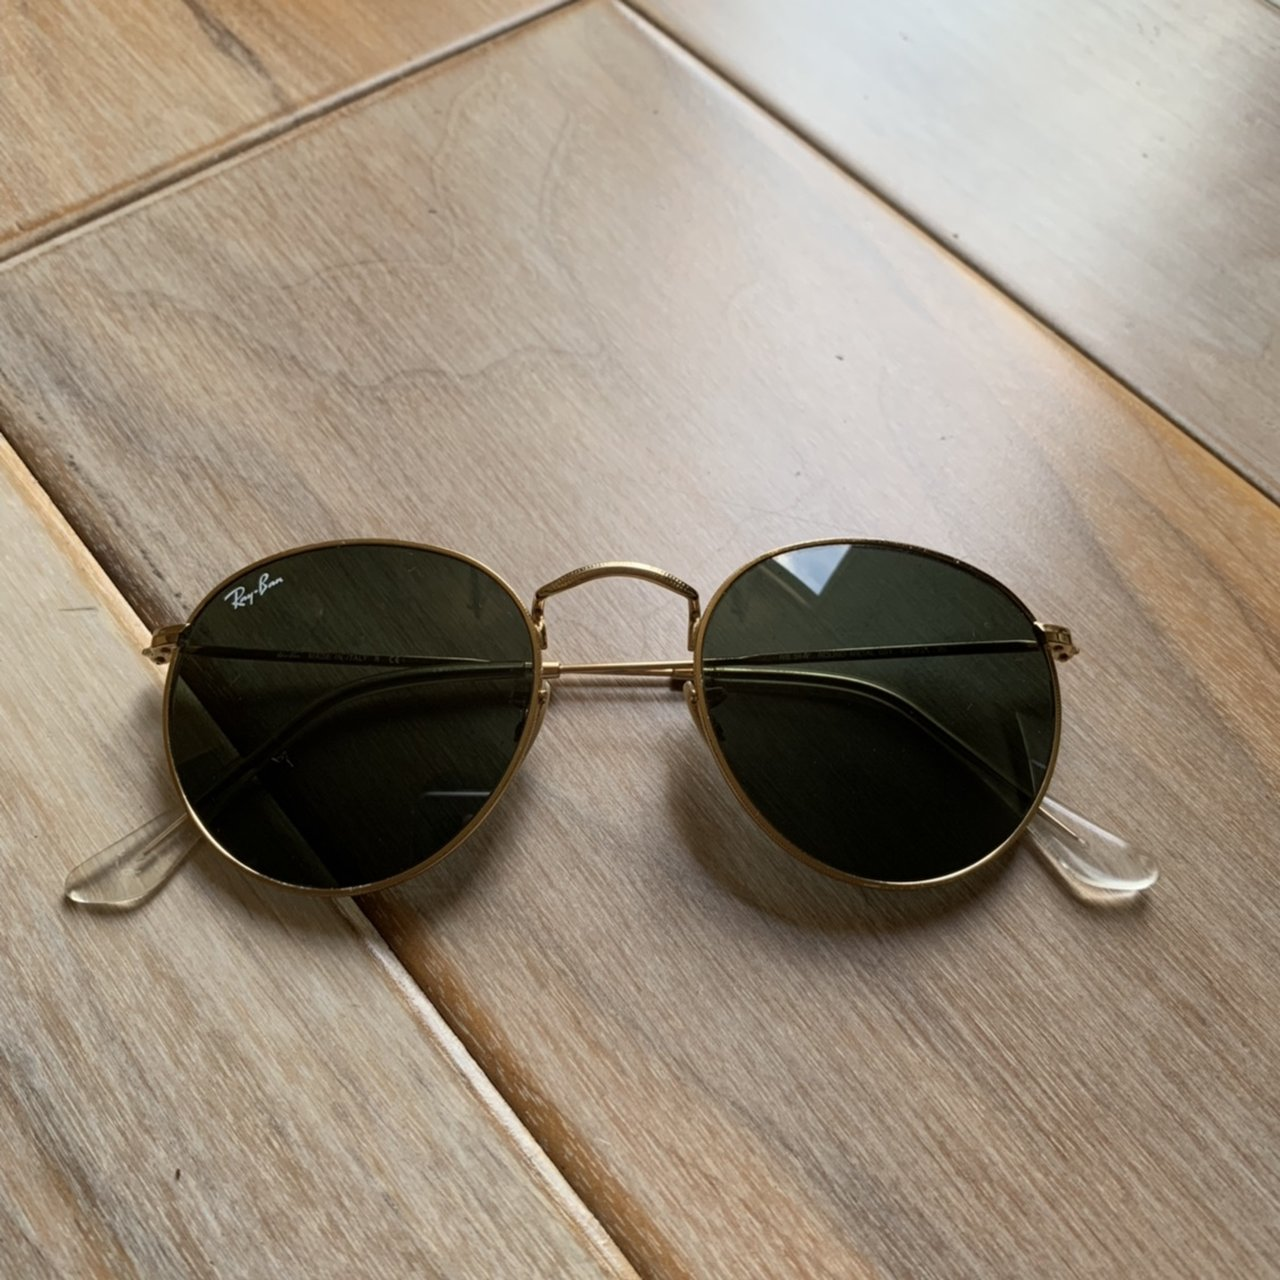 bbcde6c649 Gold round metal Ray Ban sunglasses. Tiny scratches on the a - Depop